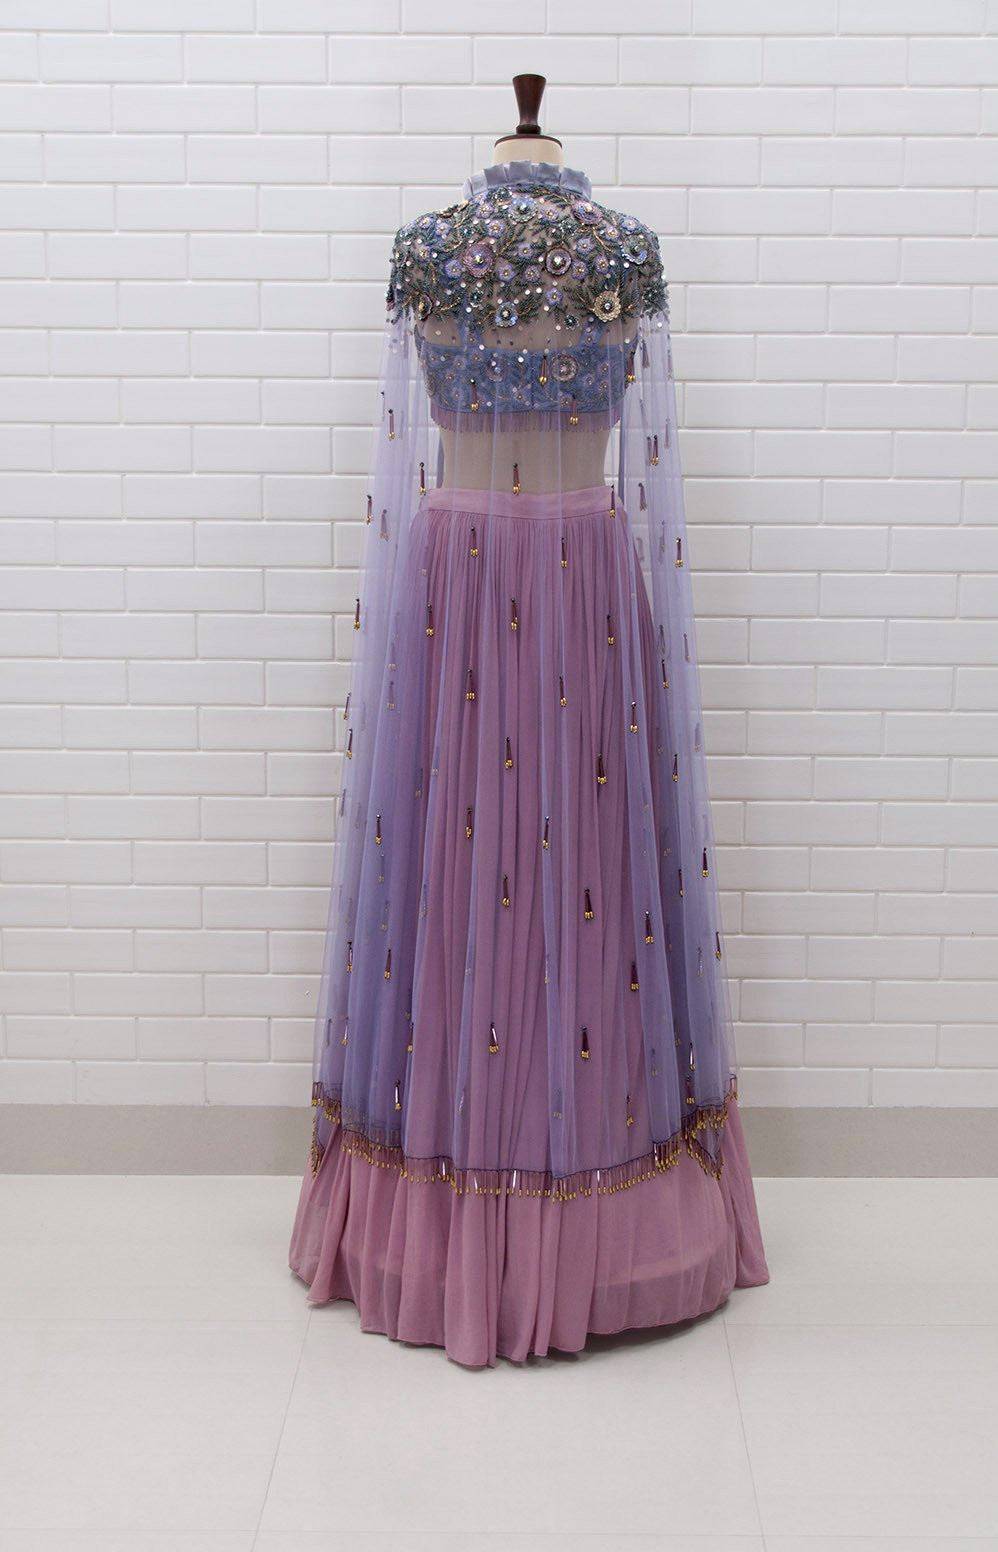 BELLAROSA : Box collar Shoulder Jacket & Blouse in Floral Sequins and Beads embroidery with pleated Lehenga